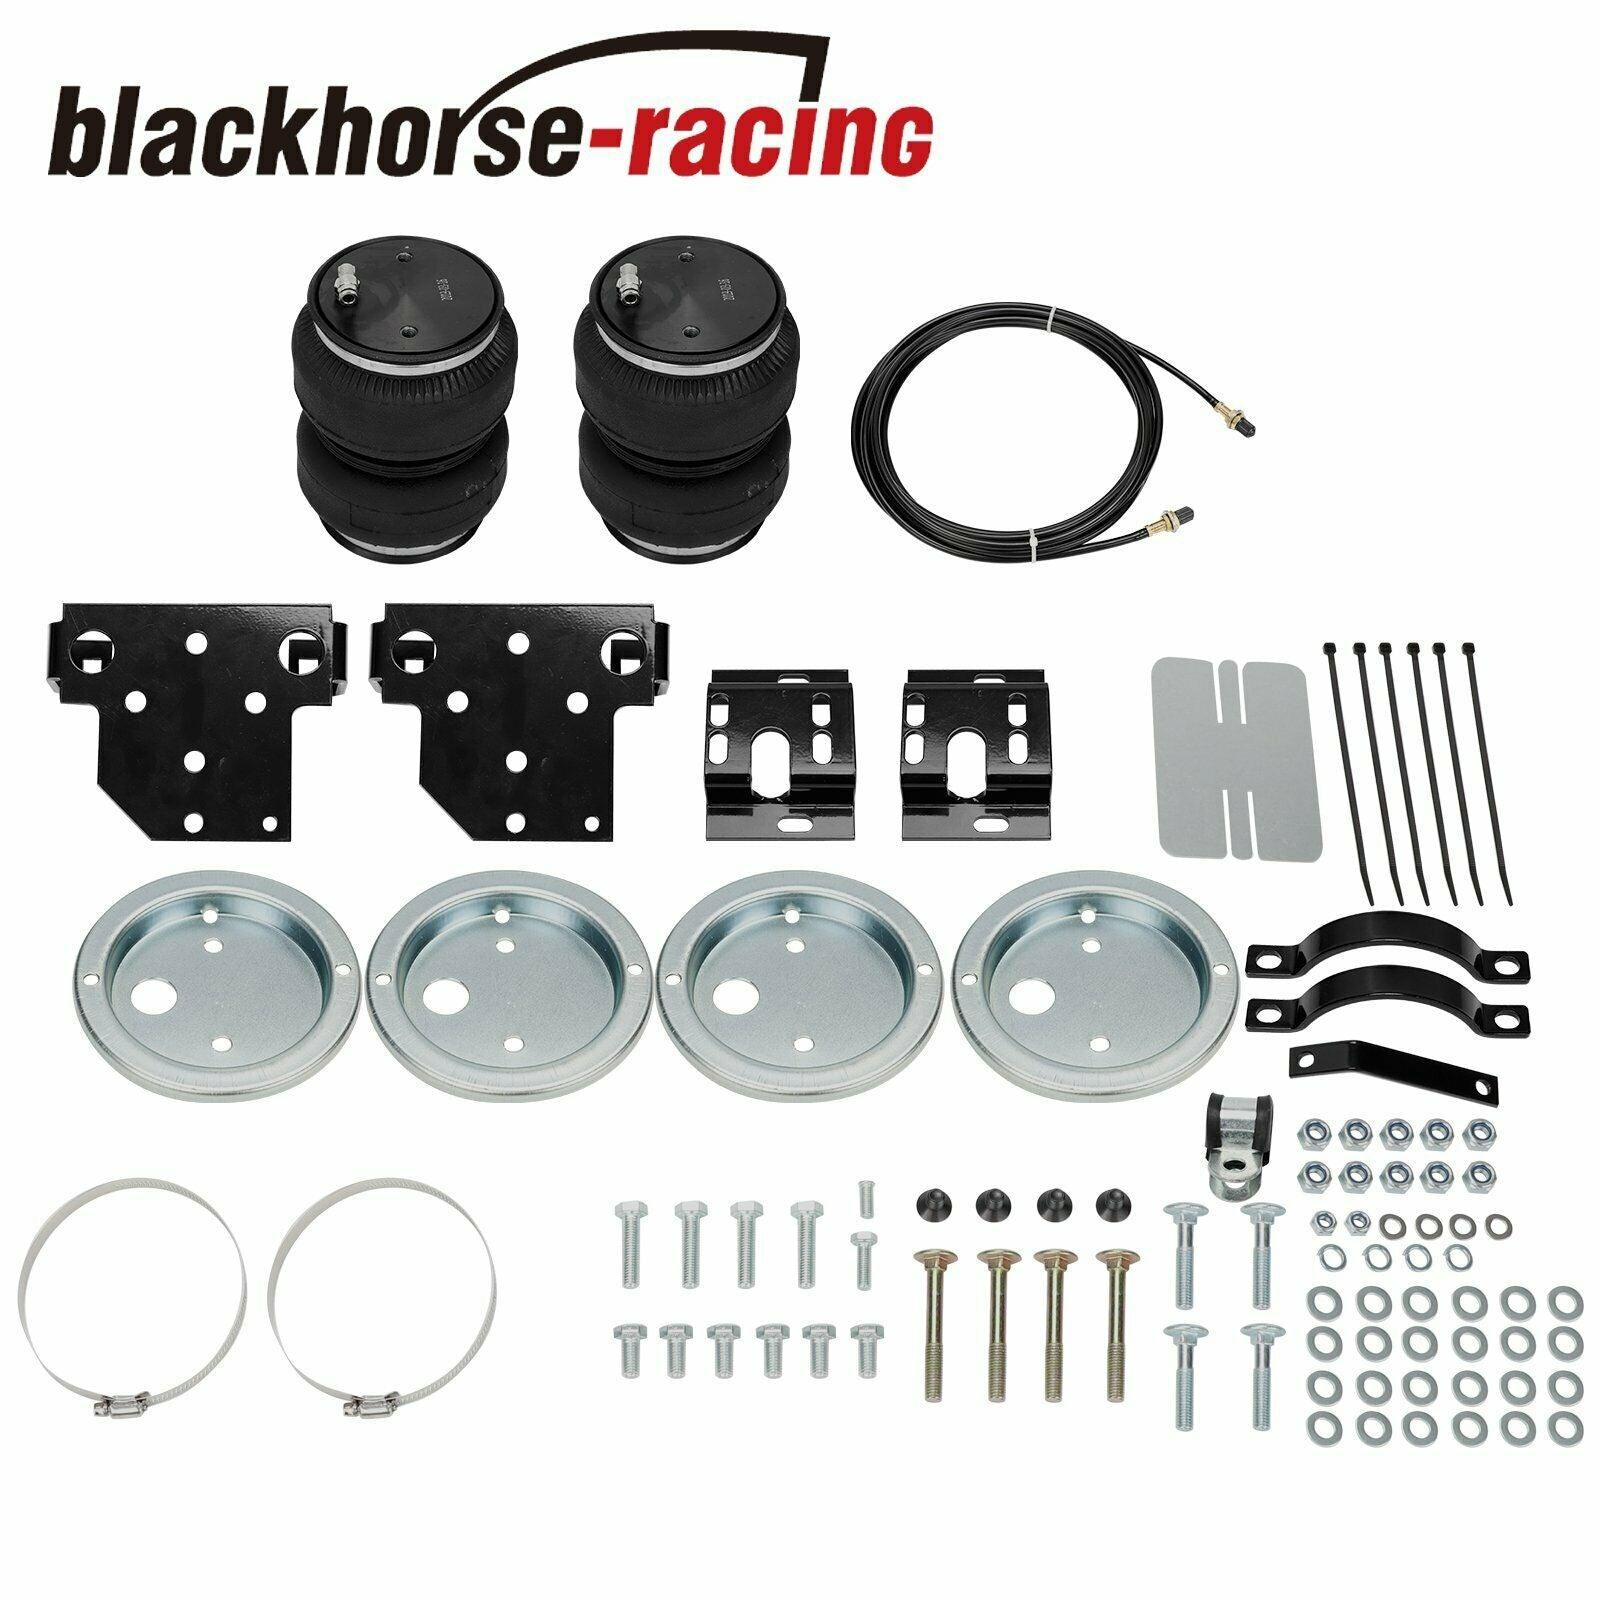 Towing Assist Over Load Air Bag Suspension Lift Kit For 01-10 Chevy 2500  No Dri